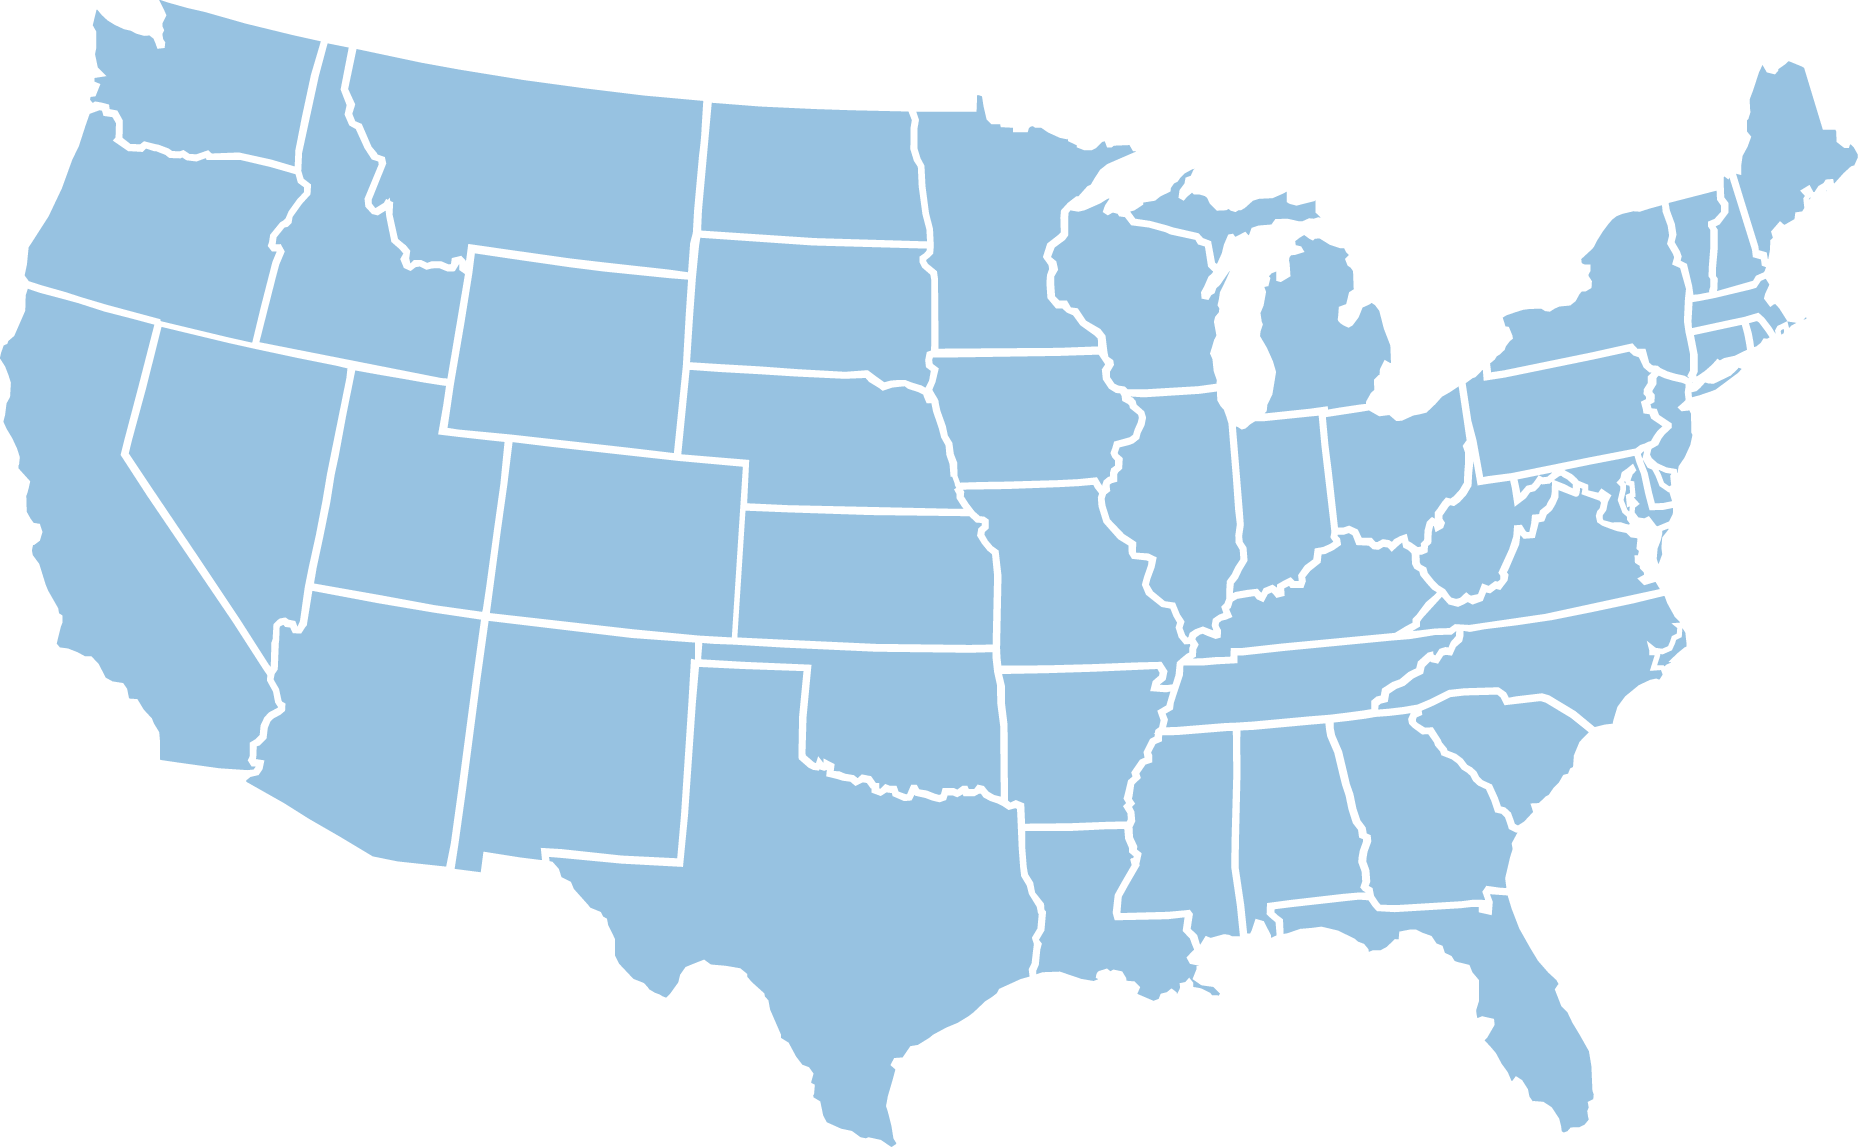 Us Map Without States Labeled Maps Of USA United States Map To - Us flat map